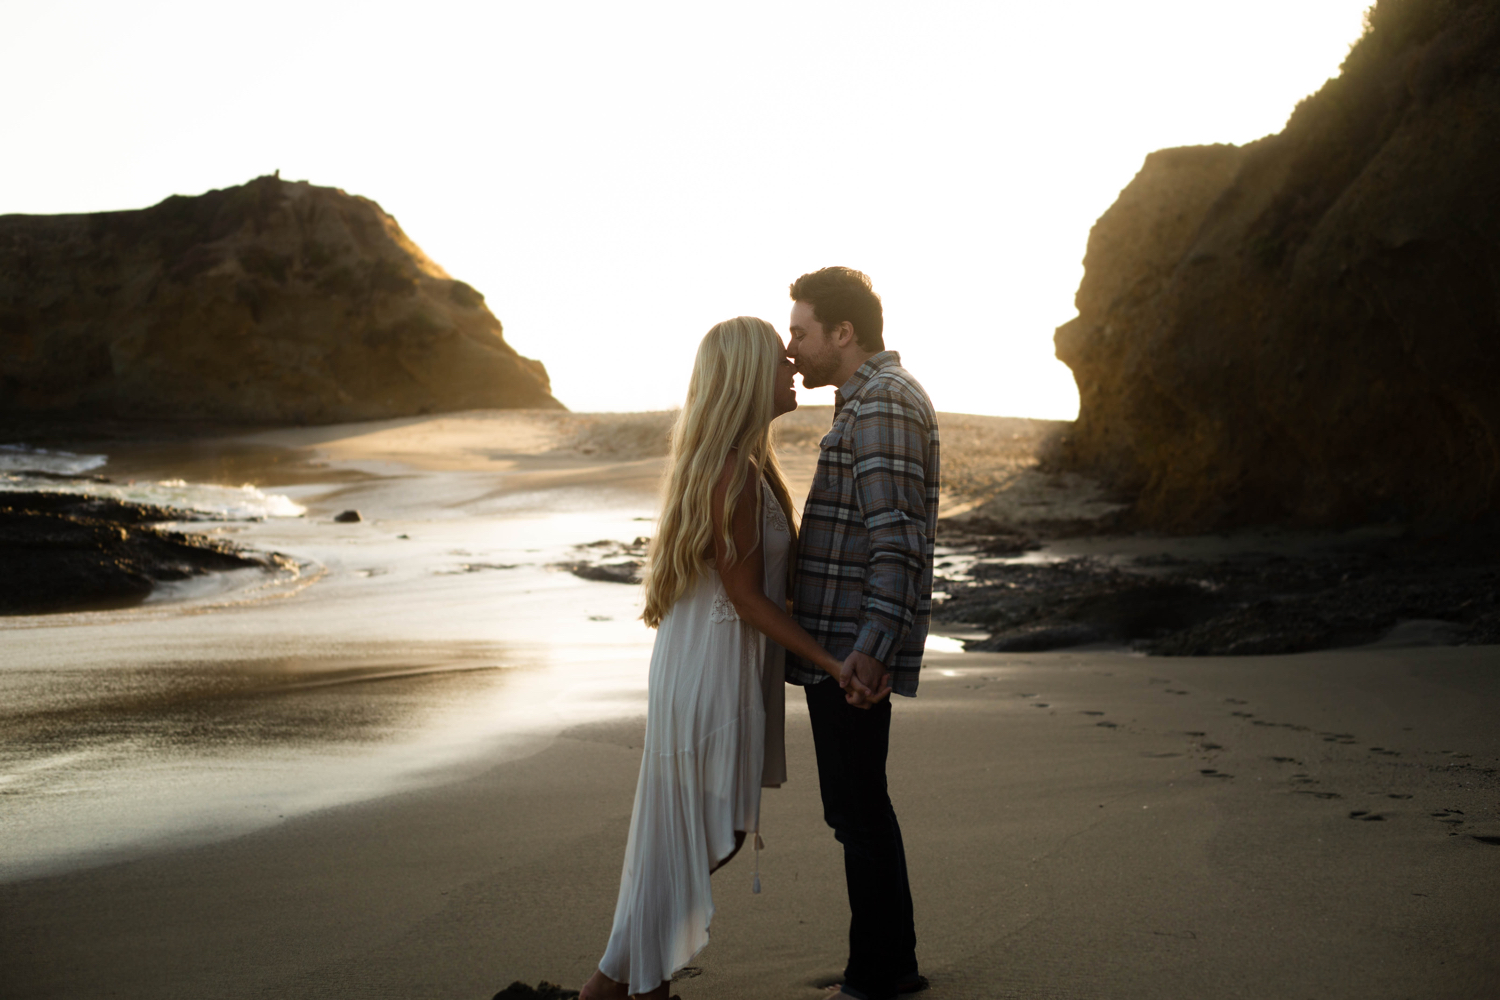 Engagement Session Orange County Photography Laguna Beach Ocean Newport Beach San Clemente Wedding Photographer Family Portrait Elopement Destination Wedding Photographer California Bohemian - 2.jpg